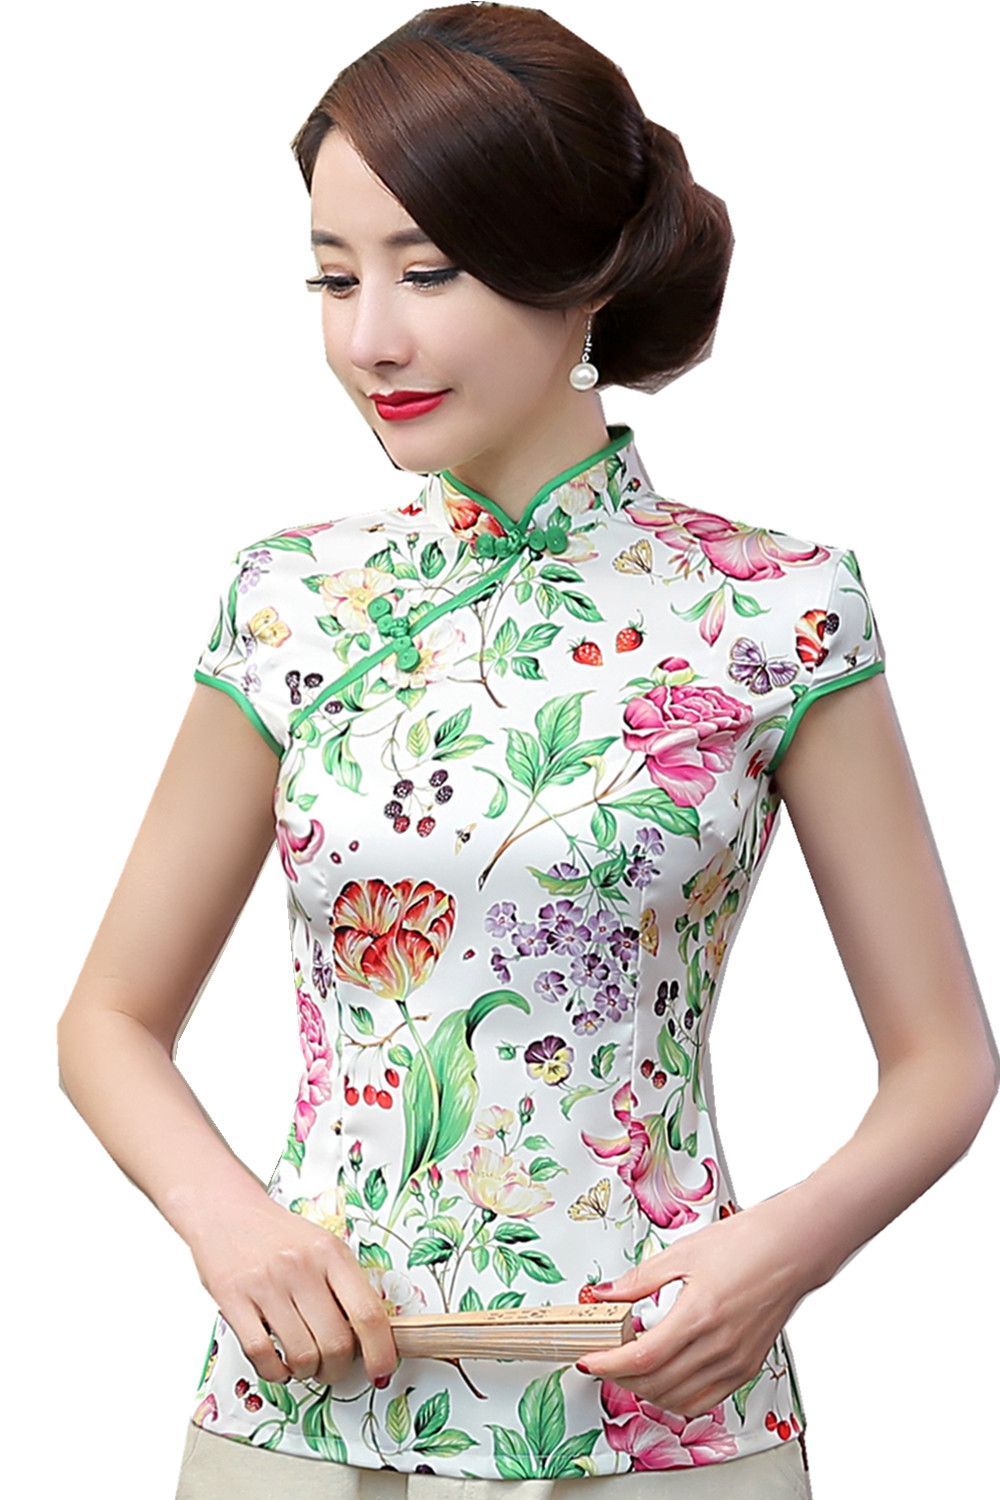 6c4c4b50af2ab Shanghai Story Womens Tops And Blouses Chinese Tops Silk Cheongsam Top  Traditional Chinese Top blouse 2